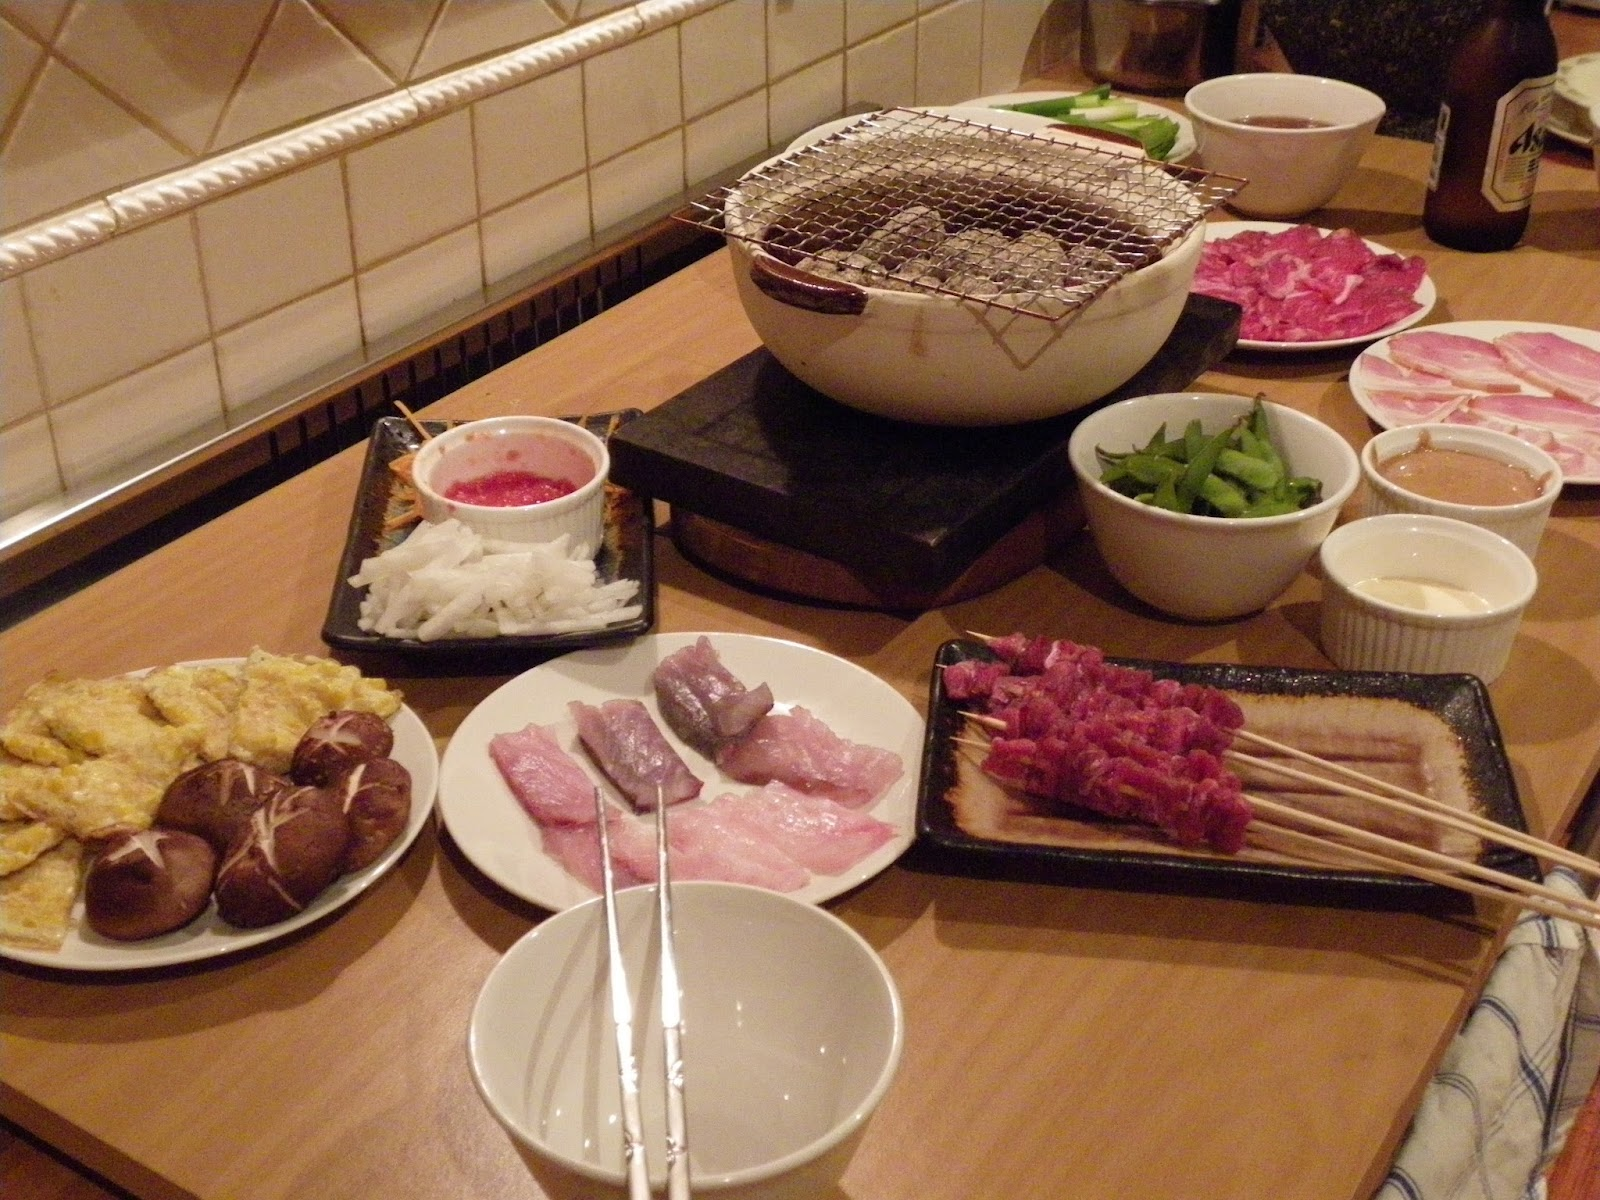 On A Recent Trip To Bangkok, I Tried To Find A Commercial Made Small  Ceramic Charcoal Grill But I Could Not Find Any That I Like. In Bangkok,  The Terracotta ...